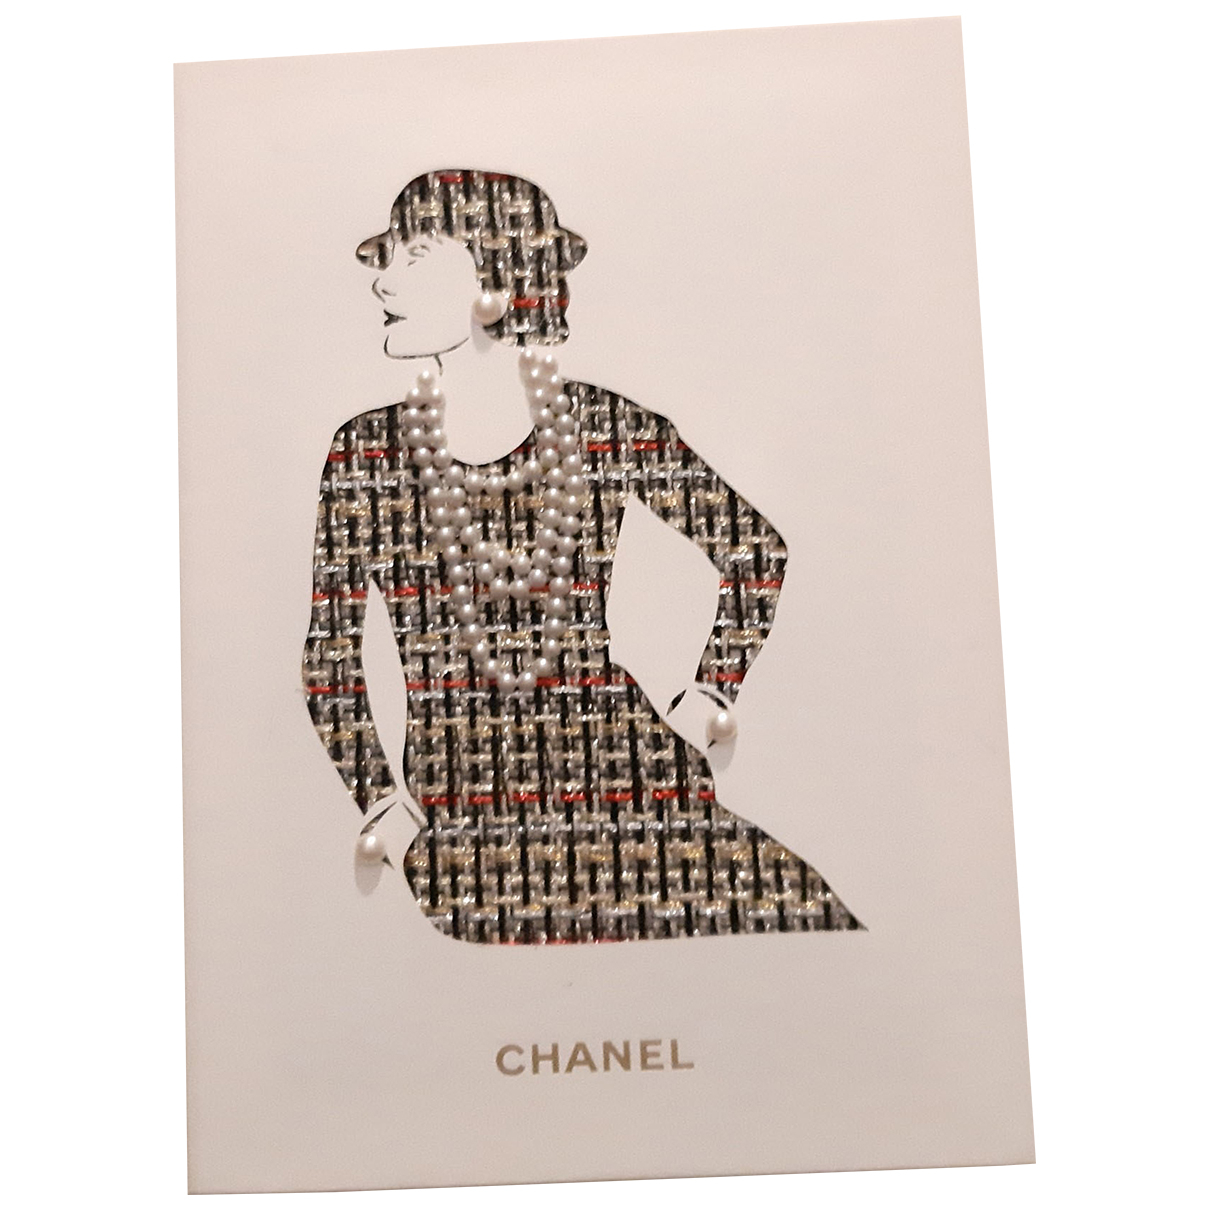 Objeto de decoracion Chanel